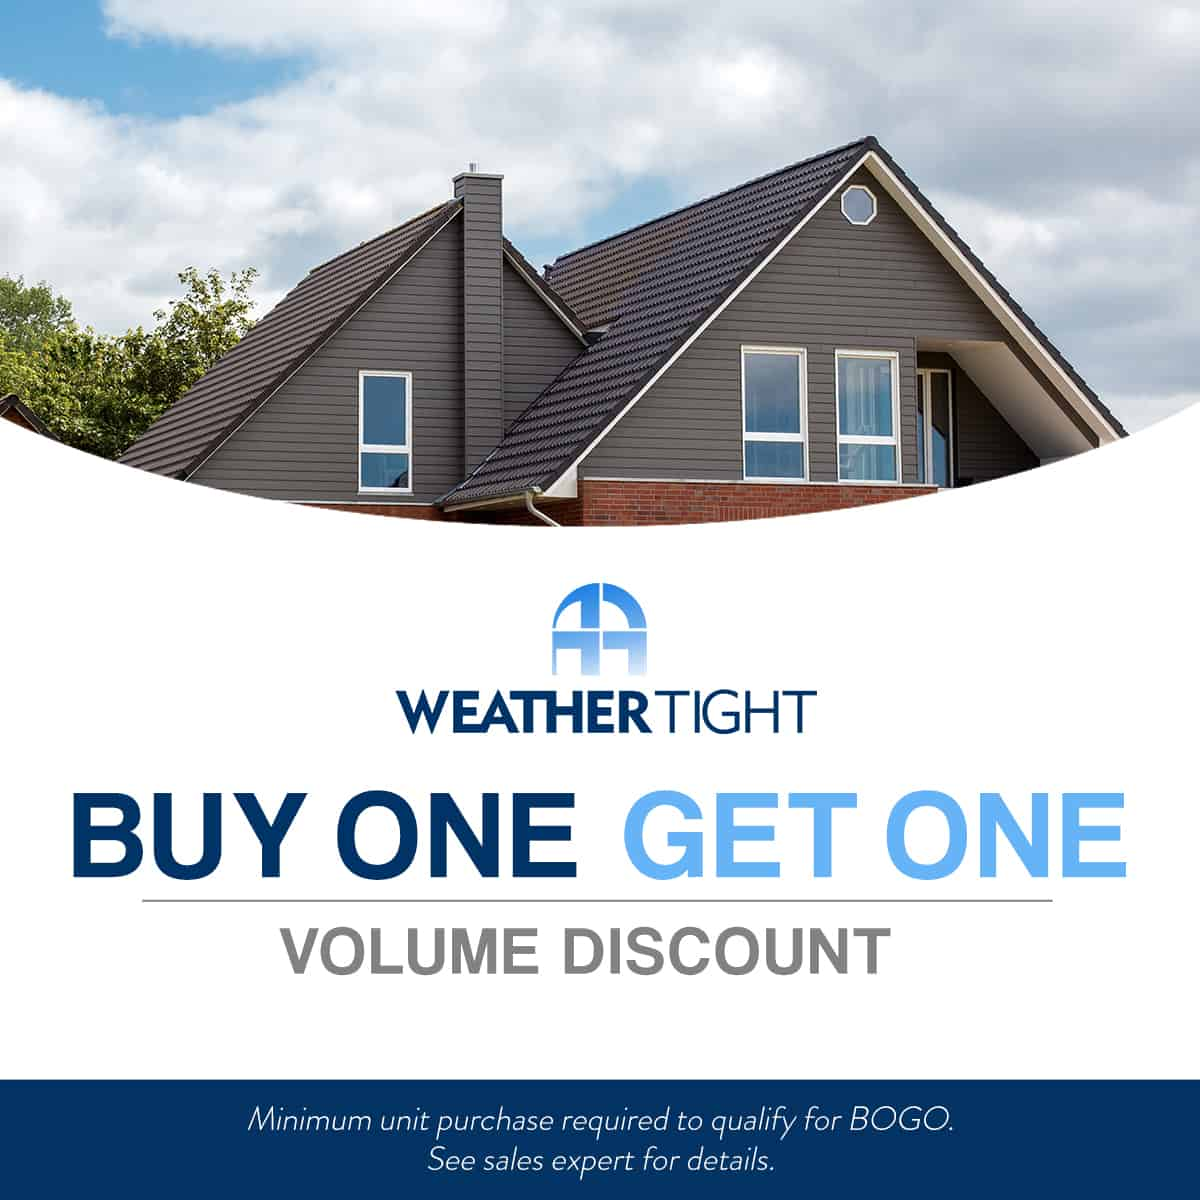 BOGO Volume Discount On Windows, Siding, Roofing, & Doors